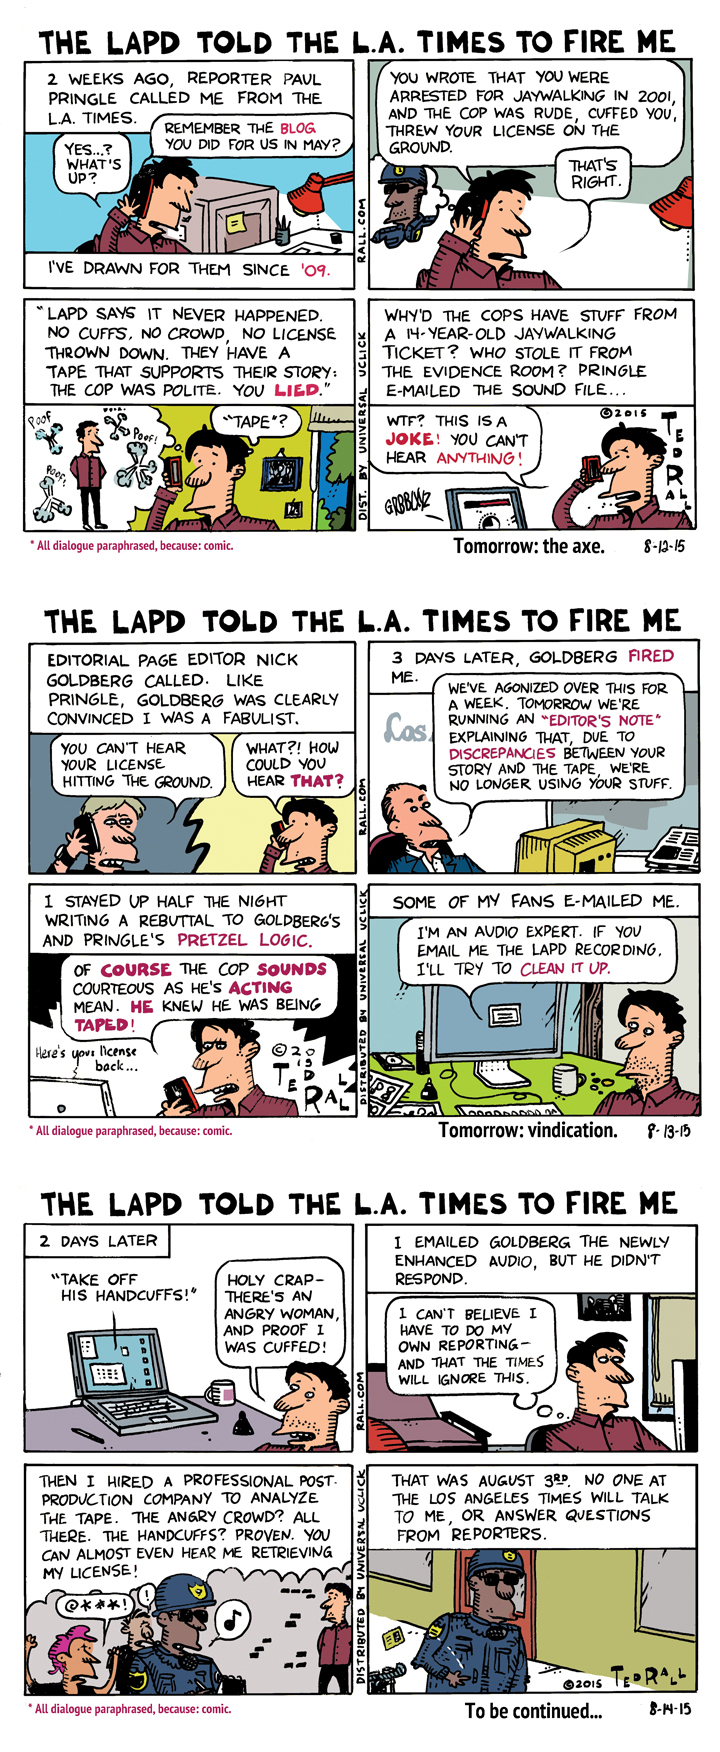 How the LA Times Fired Me for the LAPD (Part 1 of 3)